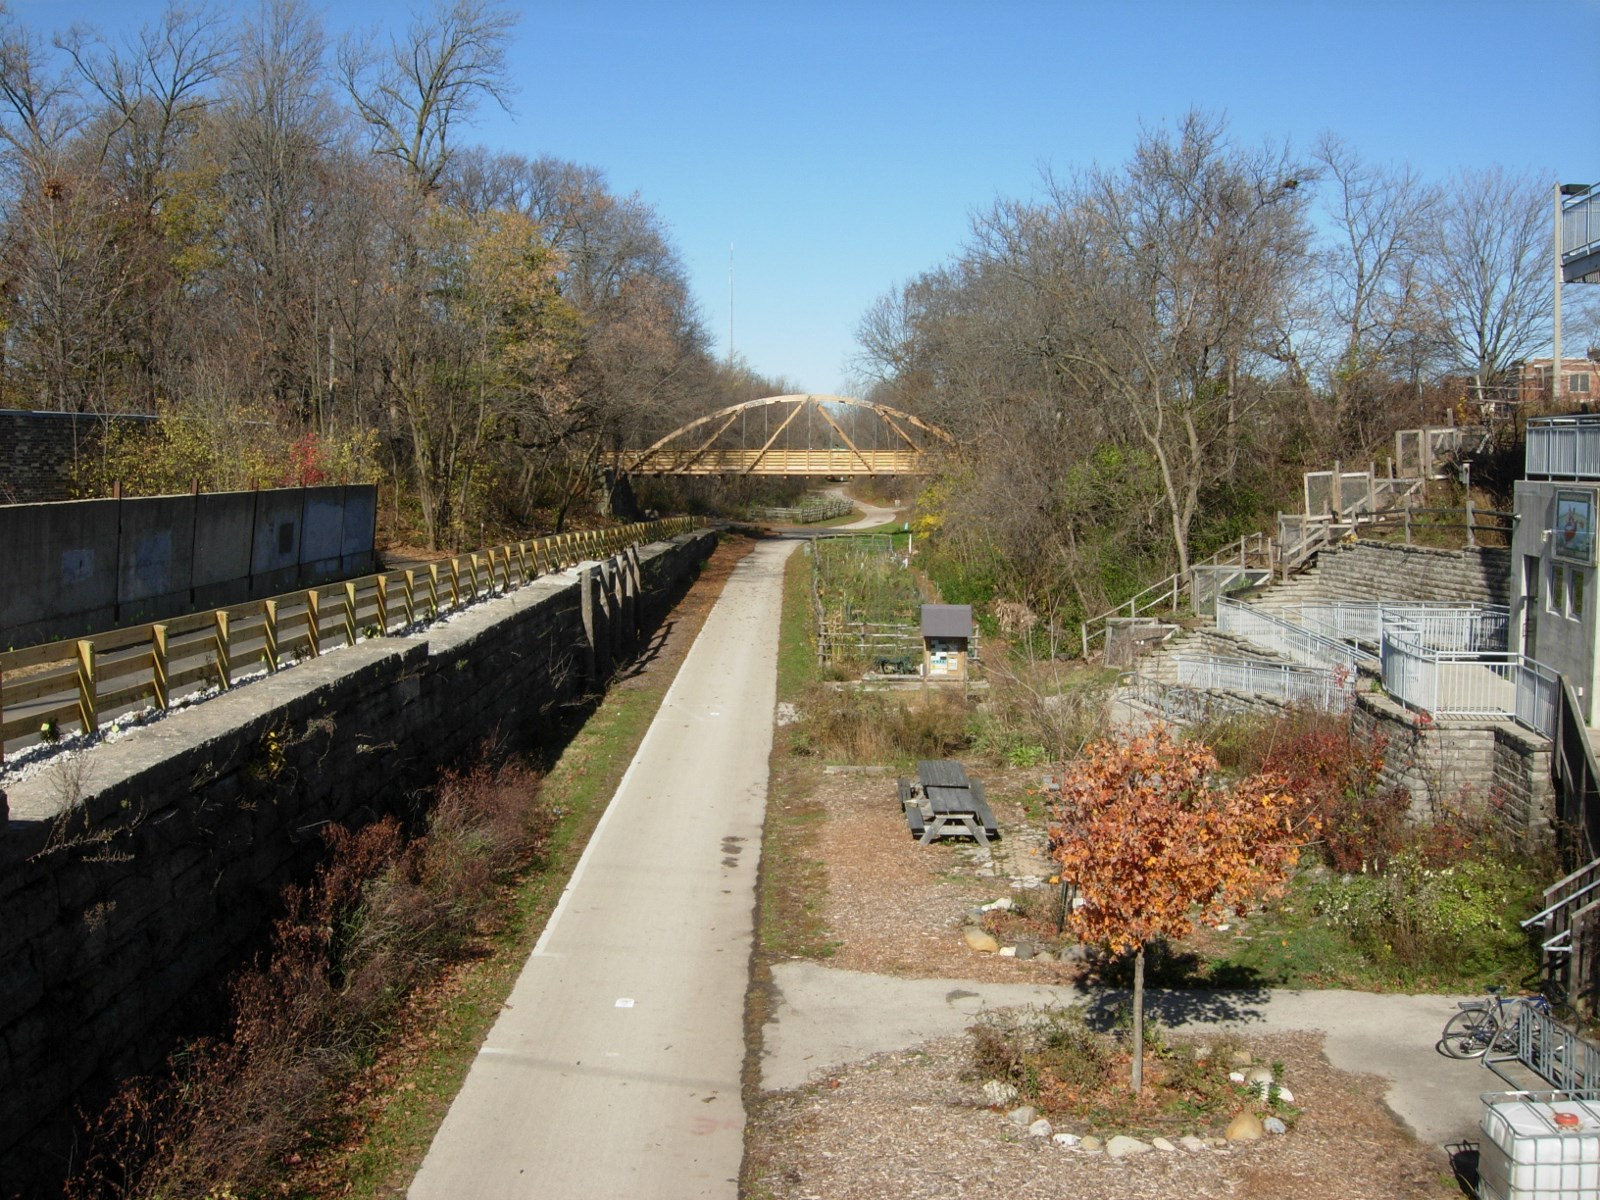 <table class=&quot;lightbox&quot;><tr><td colspan=2 class=&quot;lightbox-title&quot;>Oak Leaf Trail</td></tr><tr><td colspan=2 class=&quot;lightbox-caption&quot;>A view of the Oak Leaf Trail running just west of the Urban Ecology Center, with the East Park Place Bridge in the distance.</td></tr><tr><td colspan=2 class=&quot;lightbox-spacer&quot;></td></tr><tr class=&quot;lightbox-detail&quot;><td class=&quot;cell-title&quot;>Source: </td><td class=&quot;cell-value&quot;>From Flickr. Photograph by Aaron Volkening. CC BY 2.0.<br /><a href=&quot;https://www.flickr.com/photos/87297882@N03/14602970857/&quot; target=&quot;_blank&quot;>Flickr</a></td></tr><tr class=&quot;filler-row&quot;><td colspan=2>&nbsp;</td></tr></table>